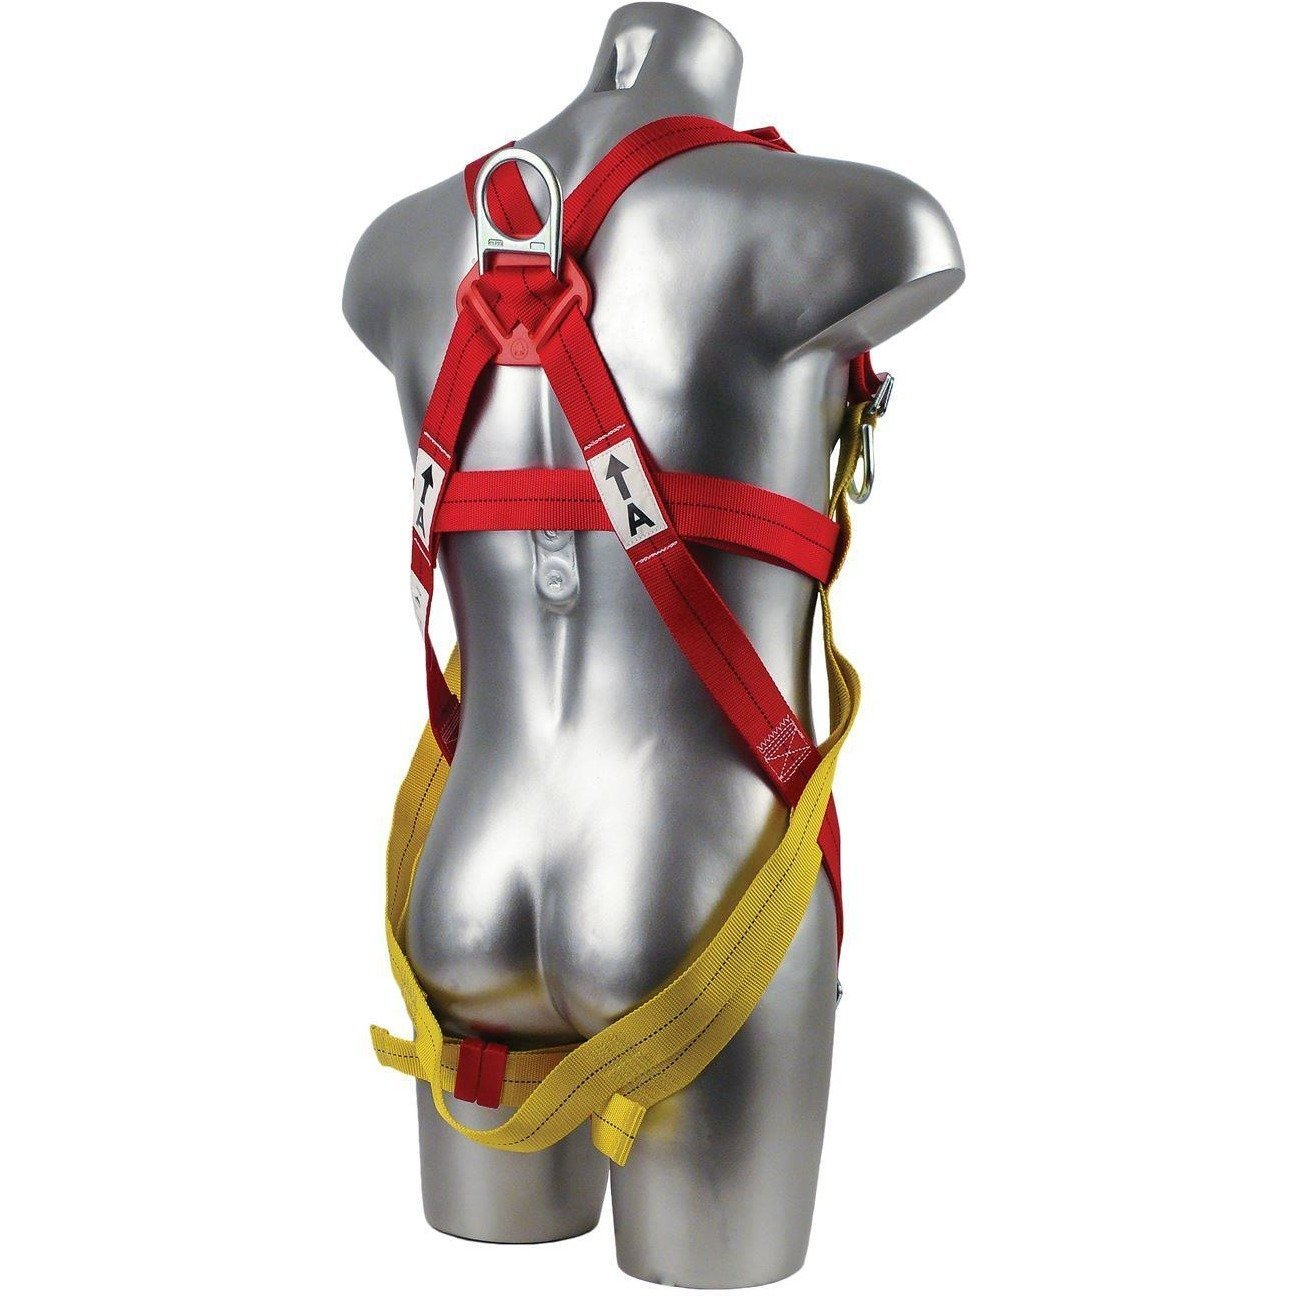 Portwest Portwest 2 Point Harness Plus Red One Size  FP10 - reid outdoors